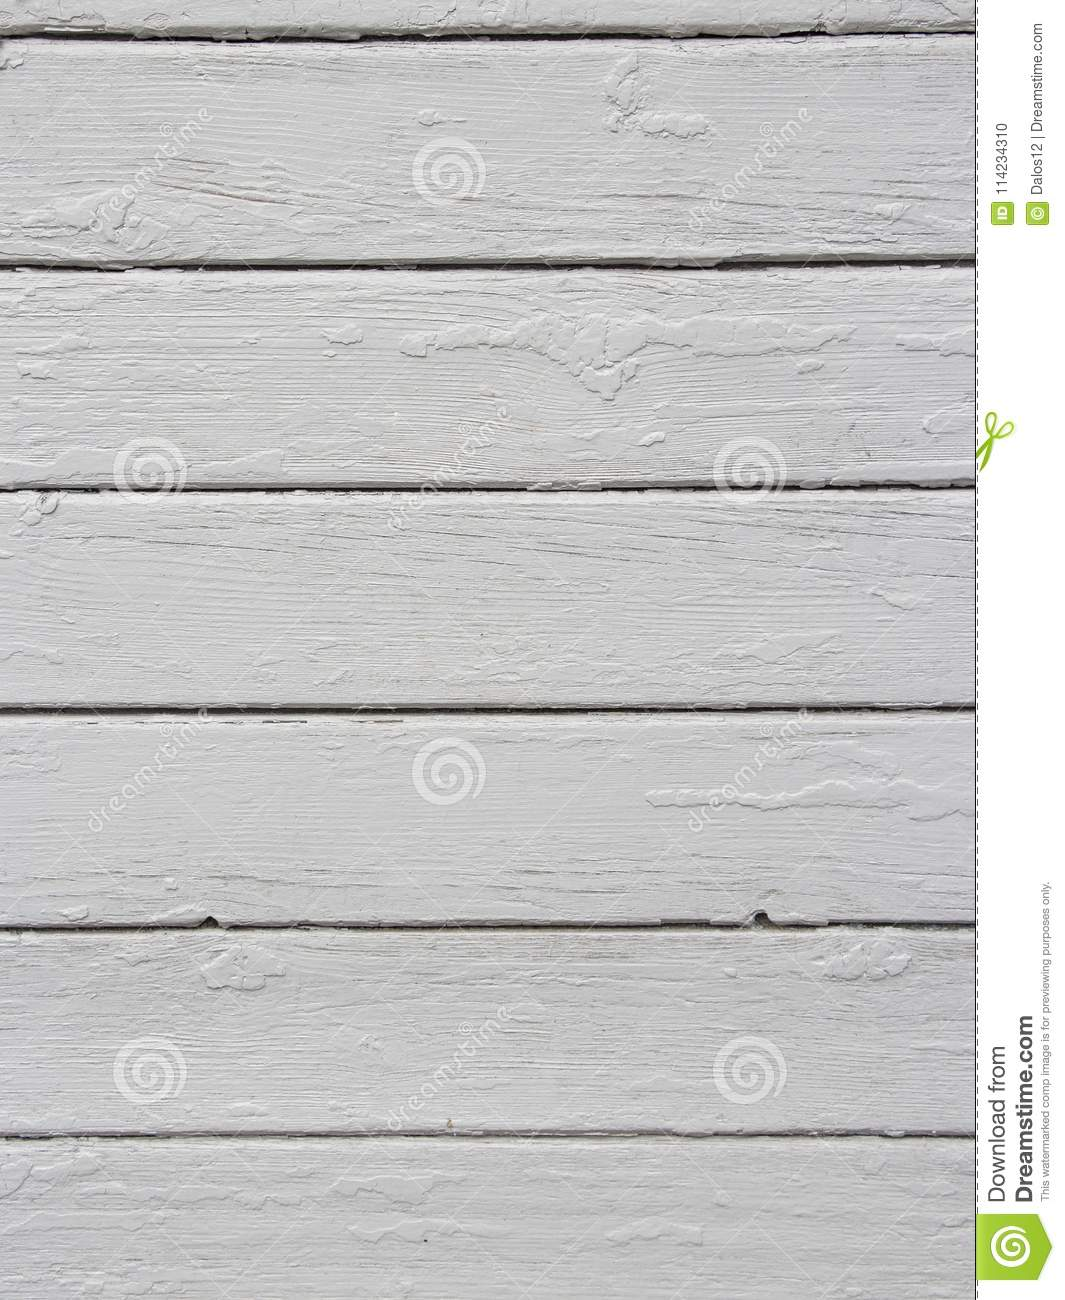 White wood texture background with natural patterns.